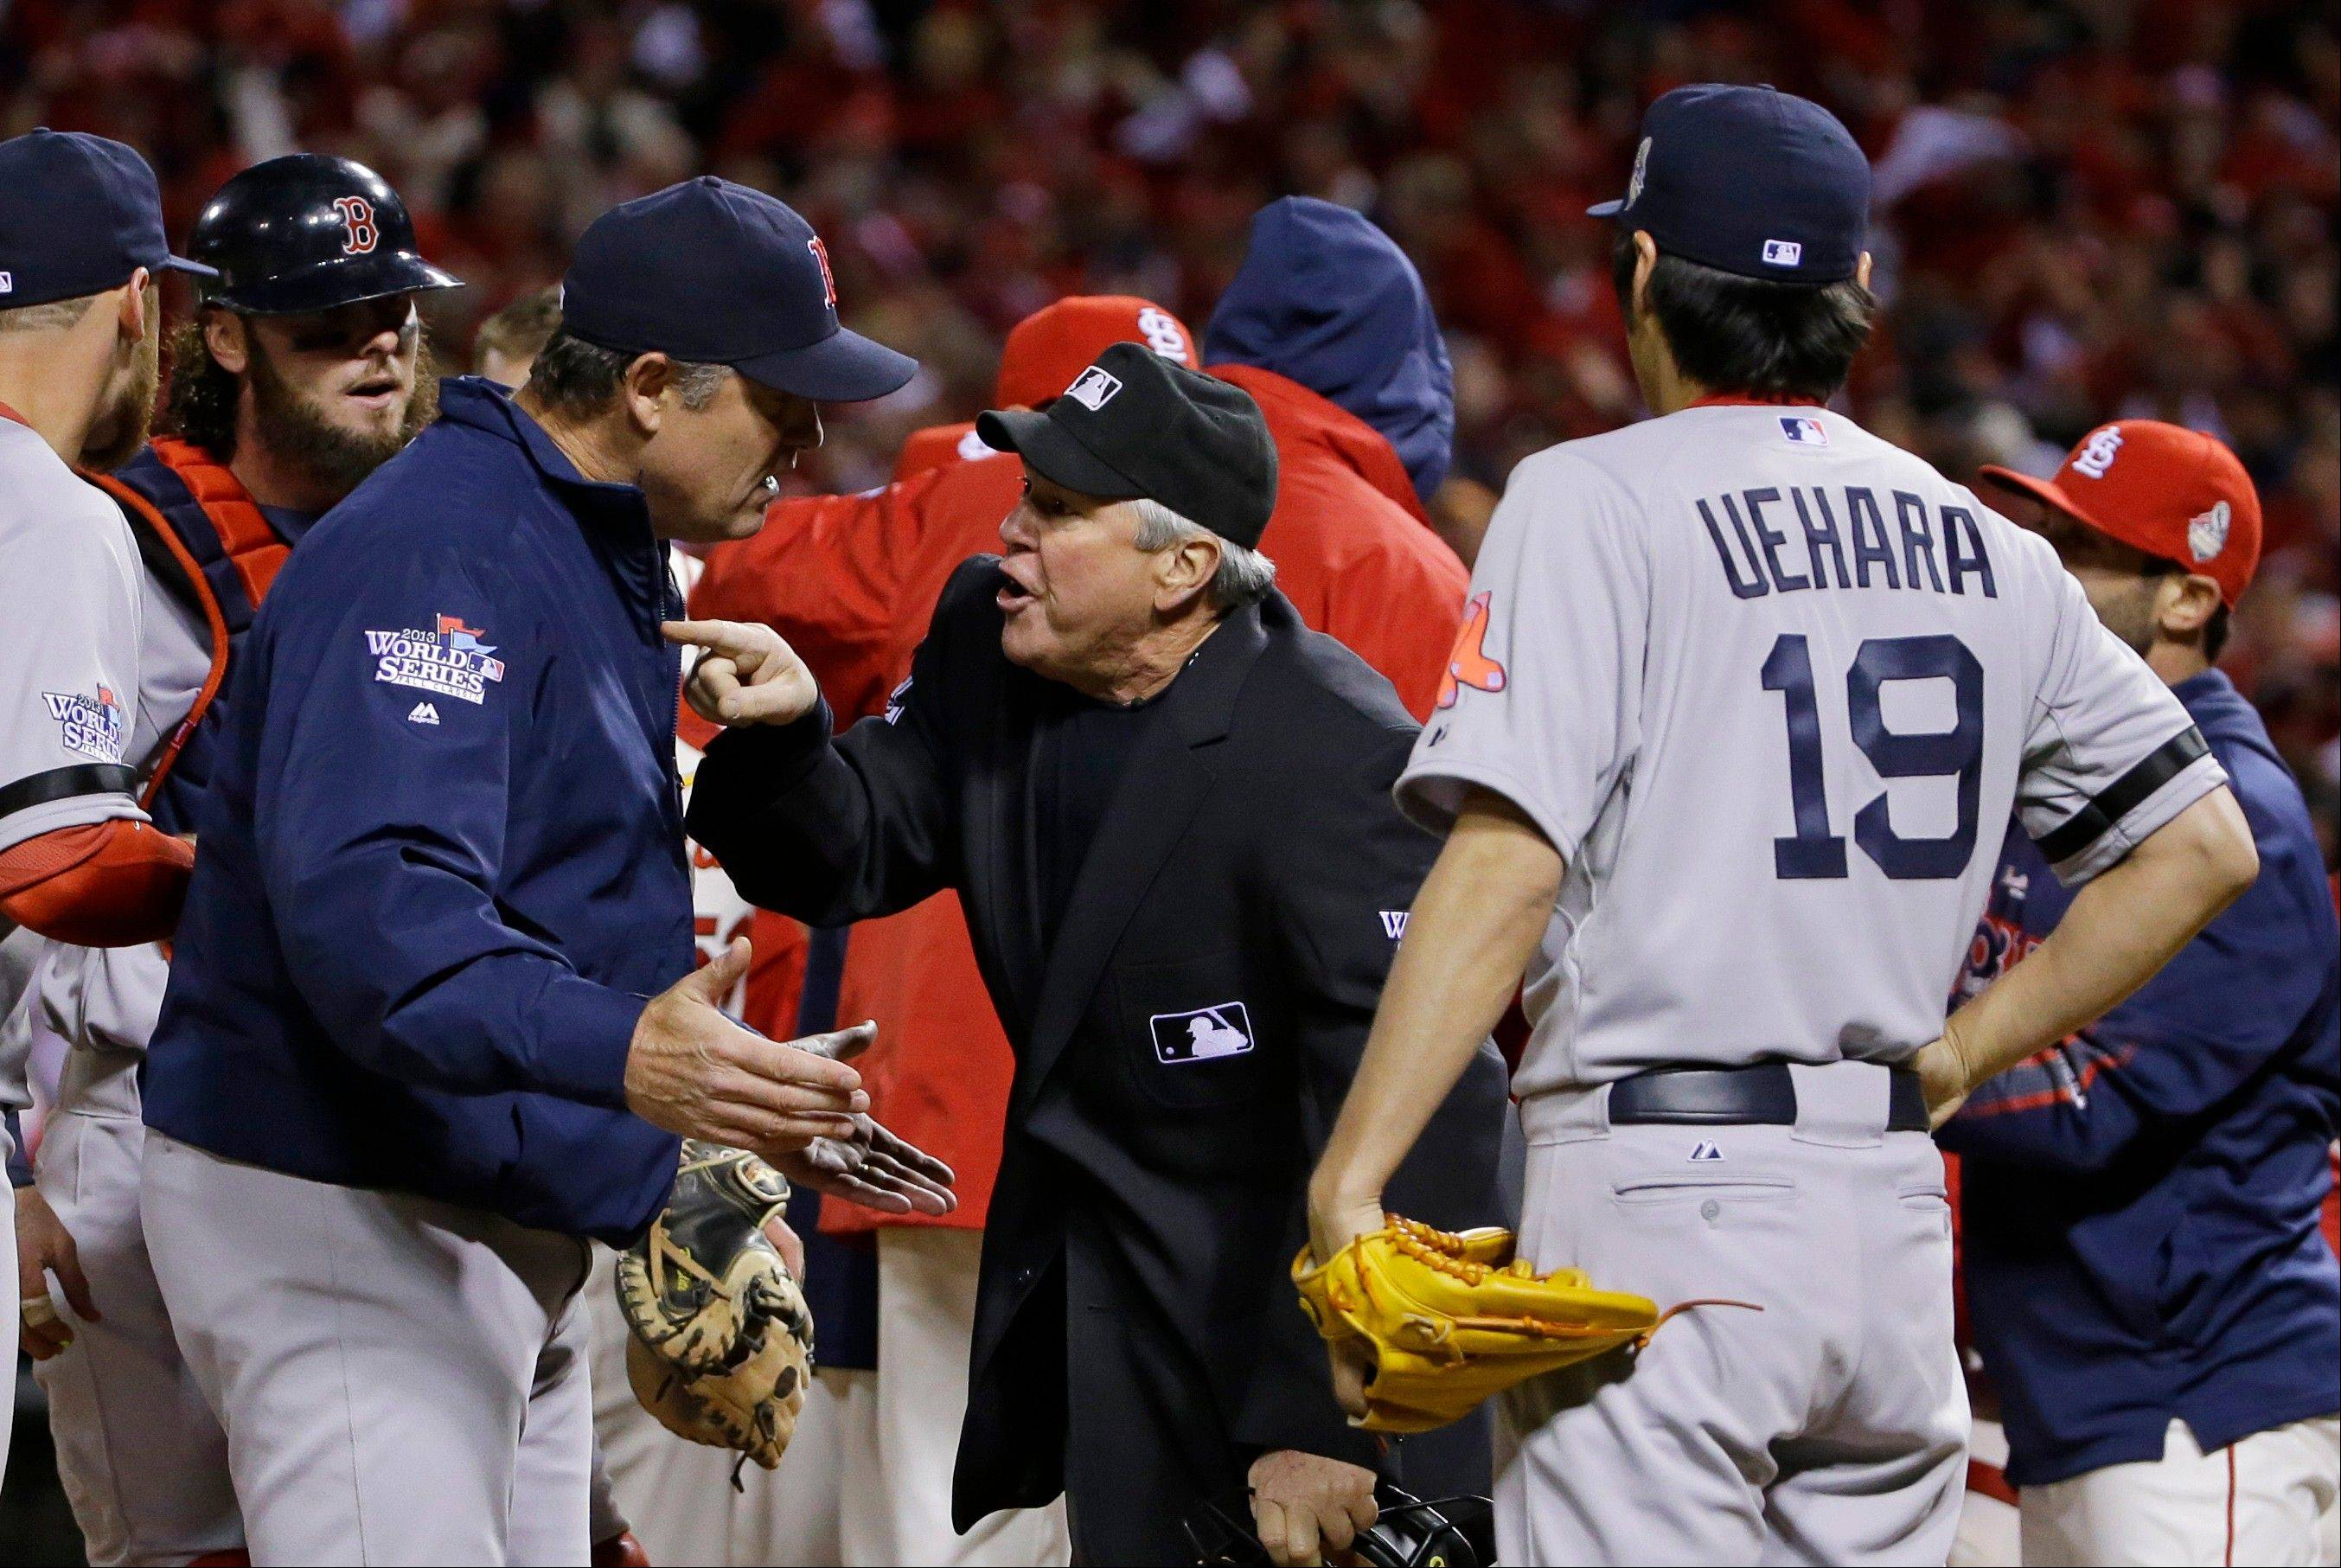 Boston Red Sox manager John Farrell argues with home plate umpire Dana DeMuth after St. Louis Cardinals scored the winning run on an obstruction play during the ninth inning.